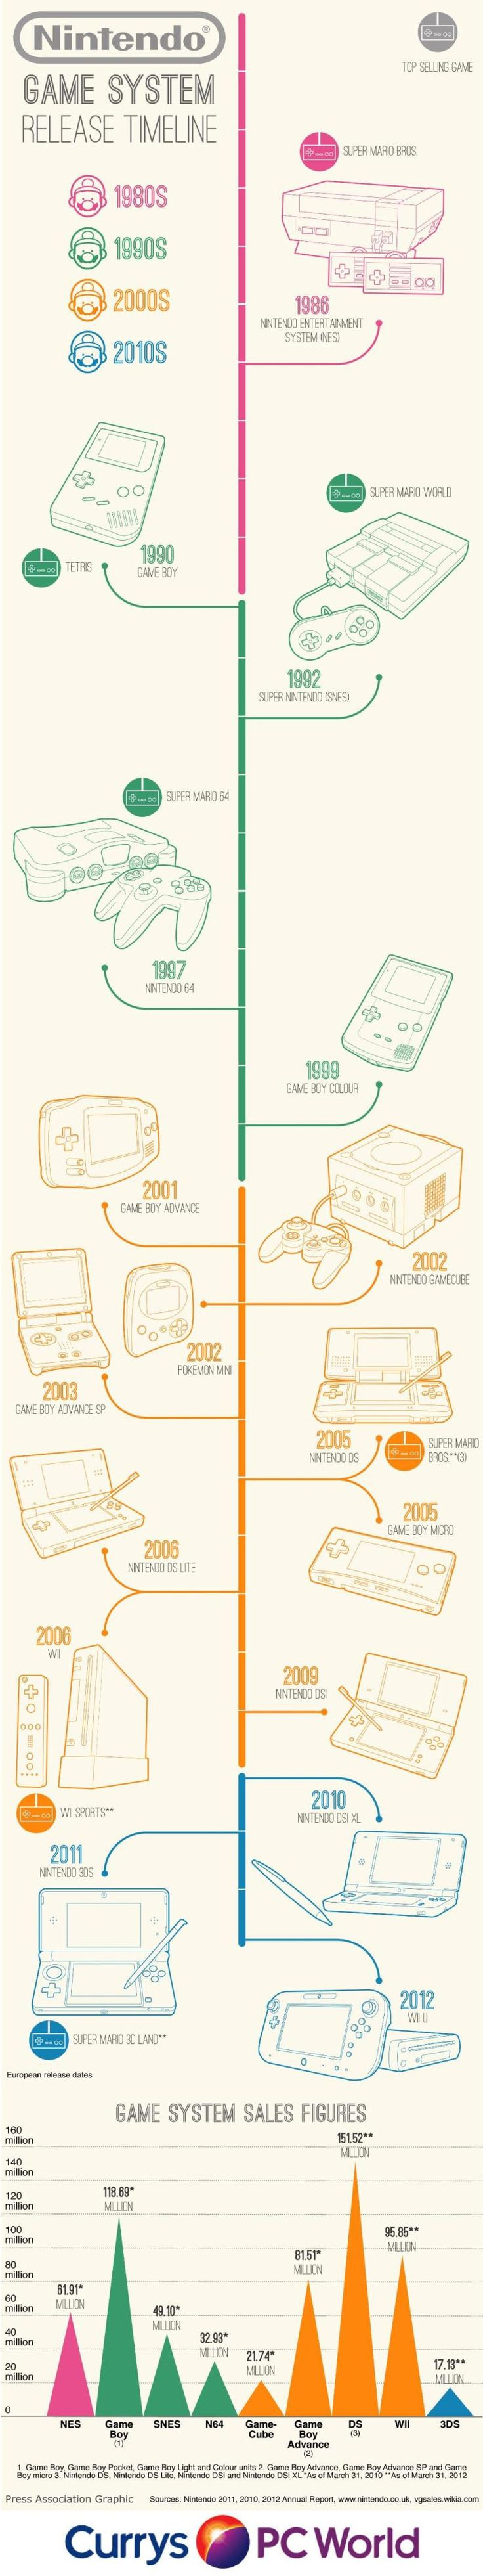 Infographic nintendo systems releases